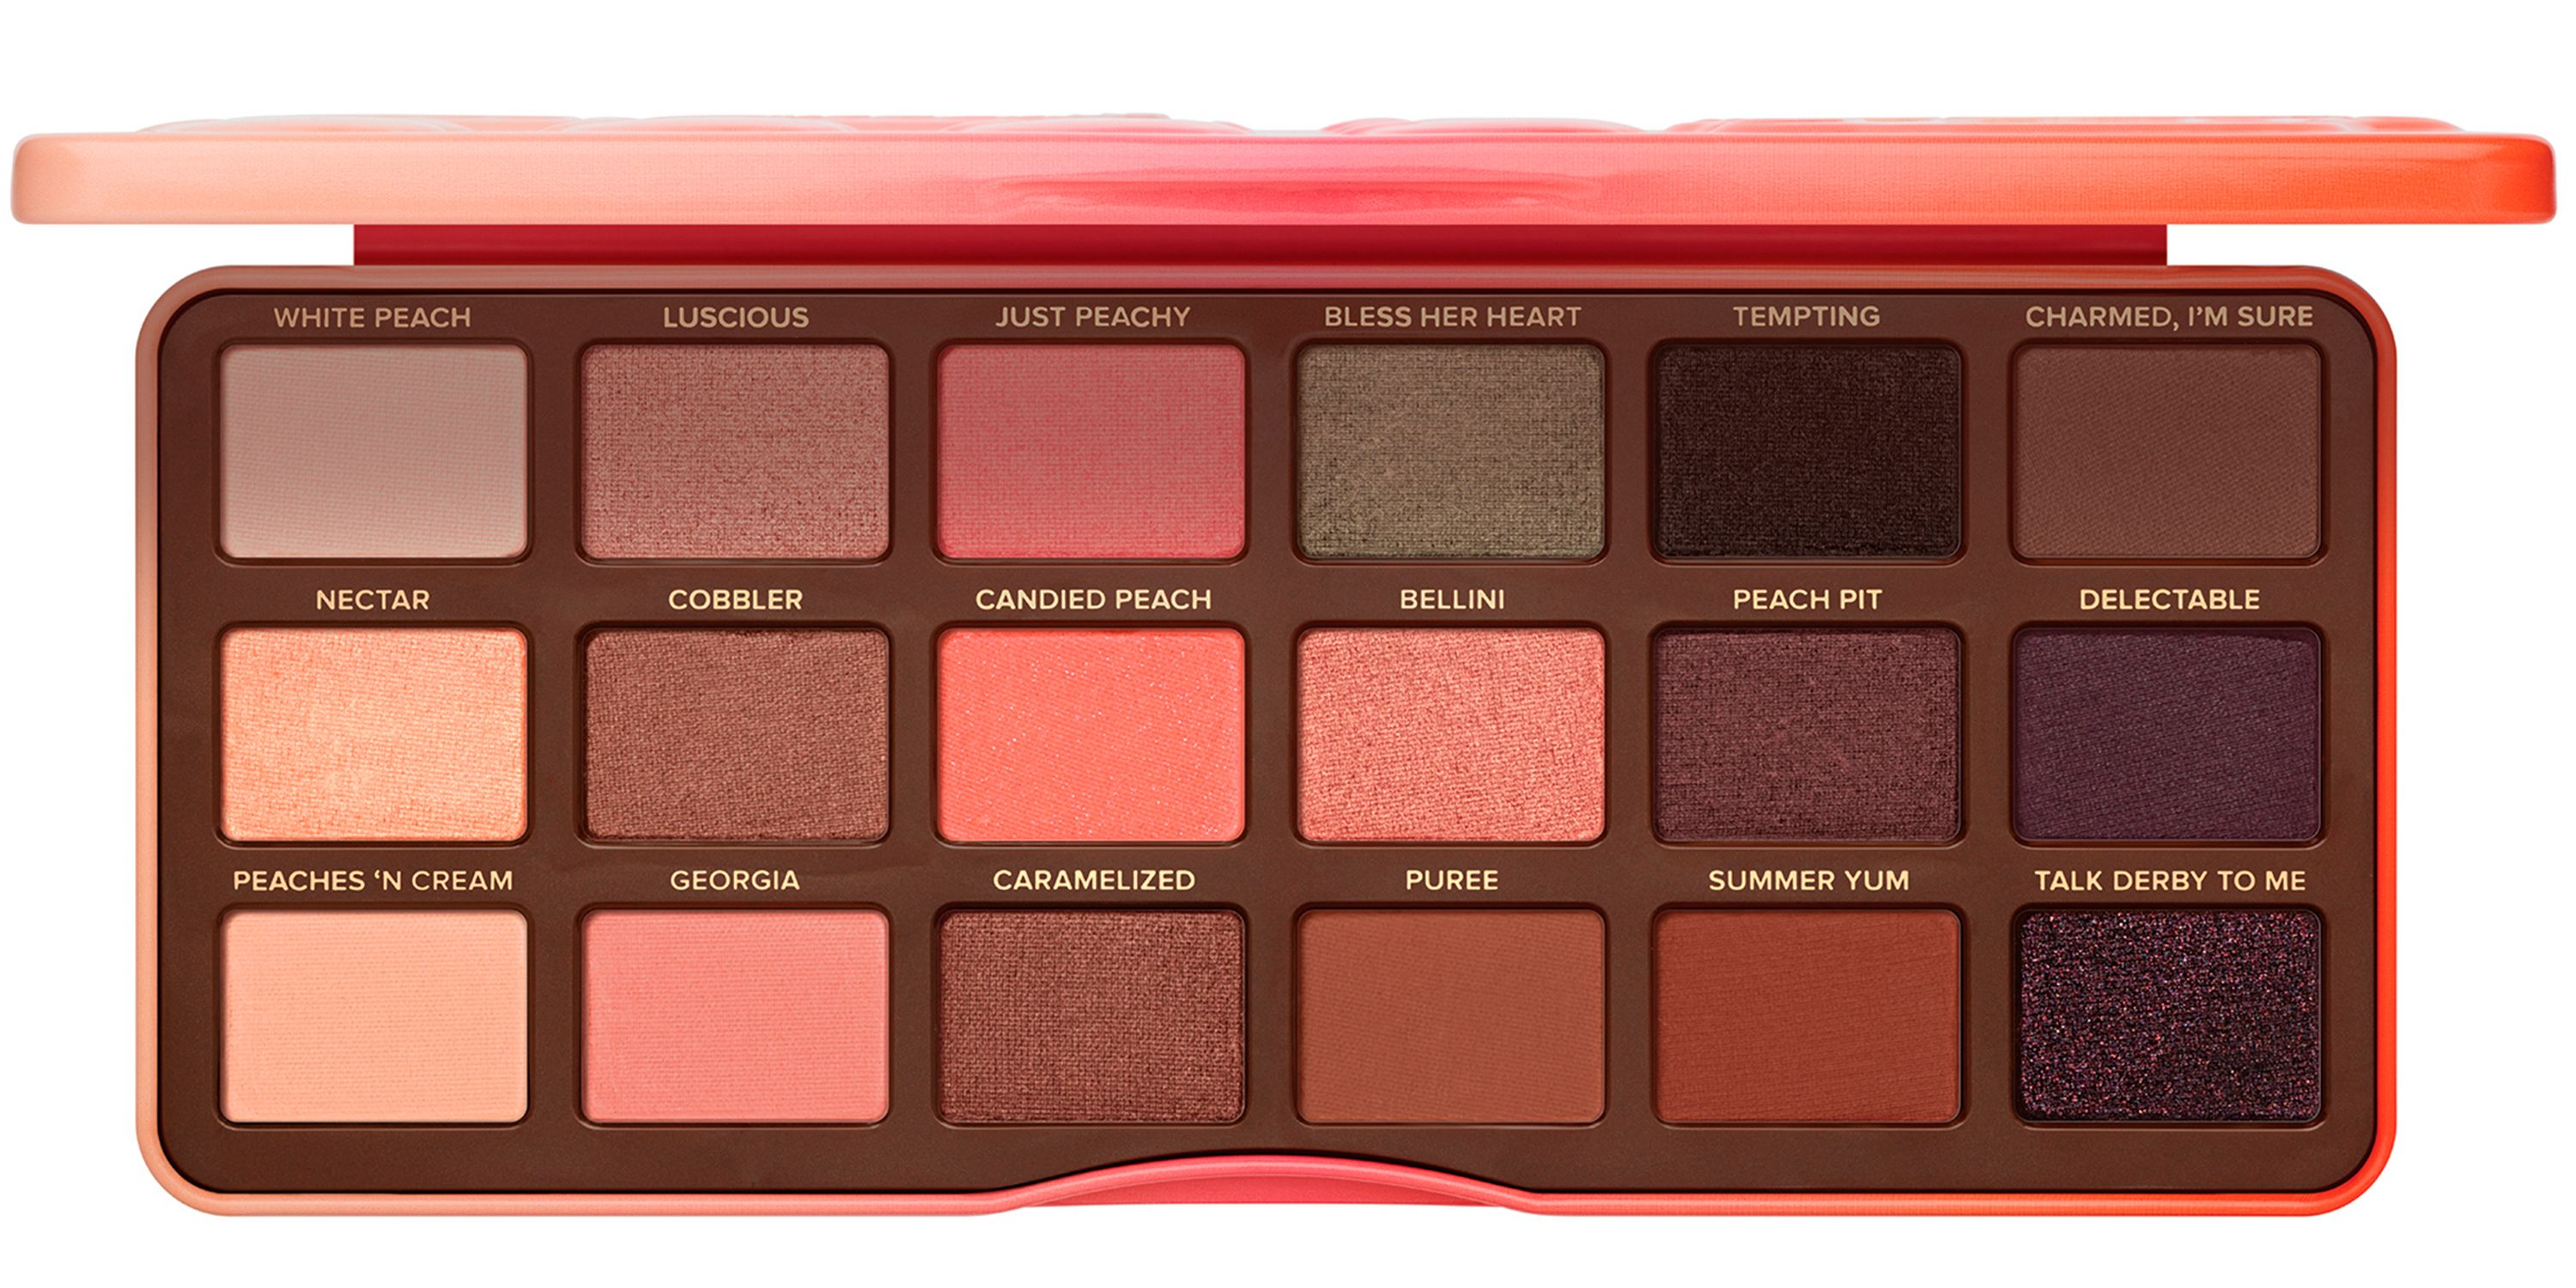 The New Eyeshadow Palettes You Need To KnowAbout